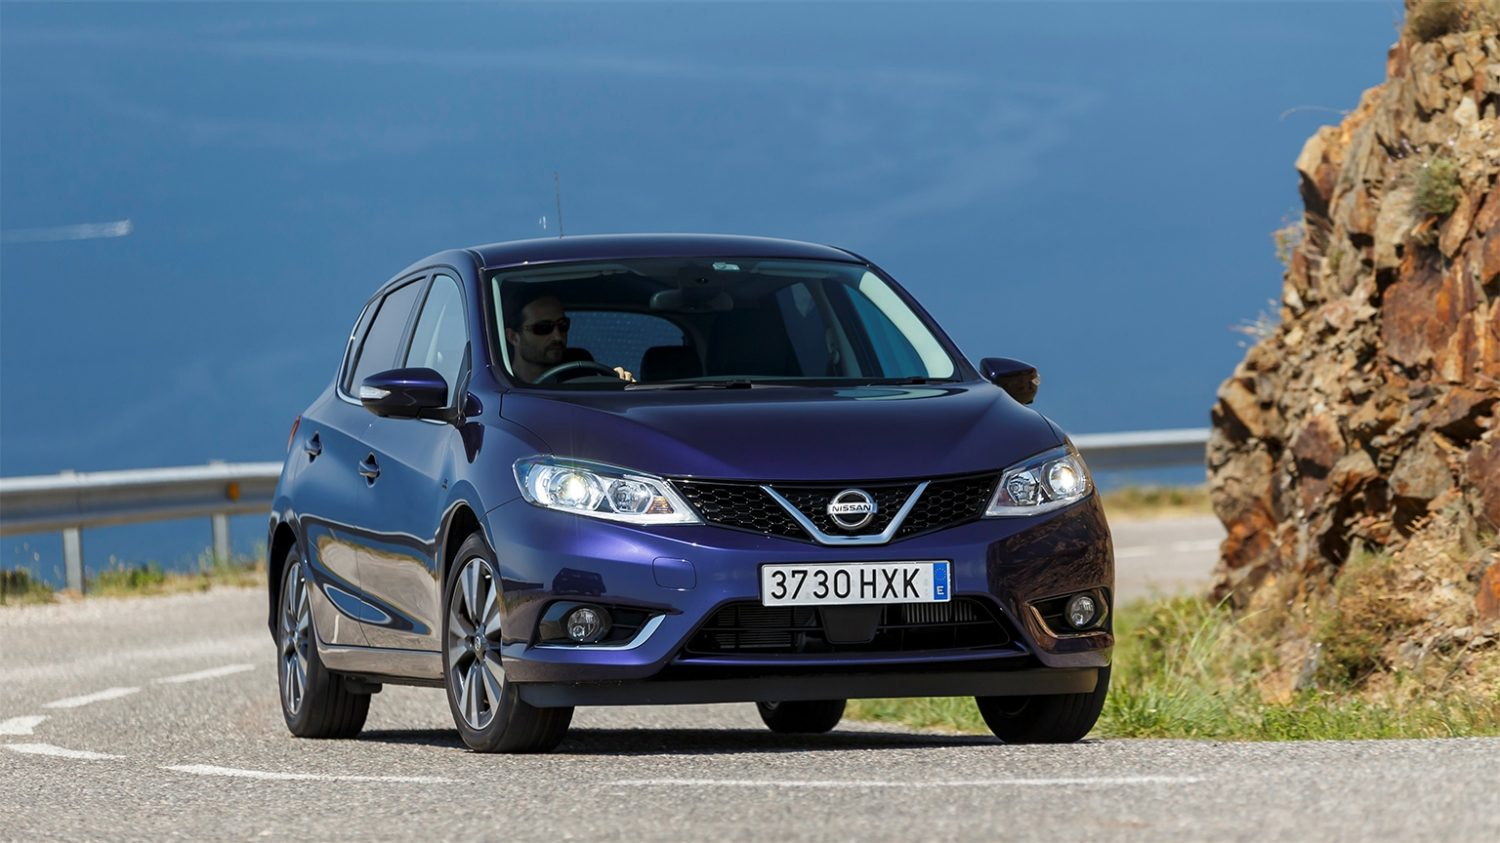 Nissan Pulsar – Hatchback | Front action shot on curved road